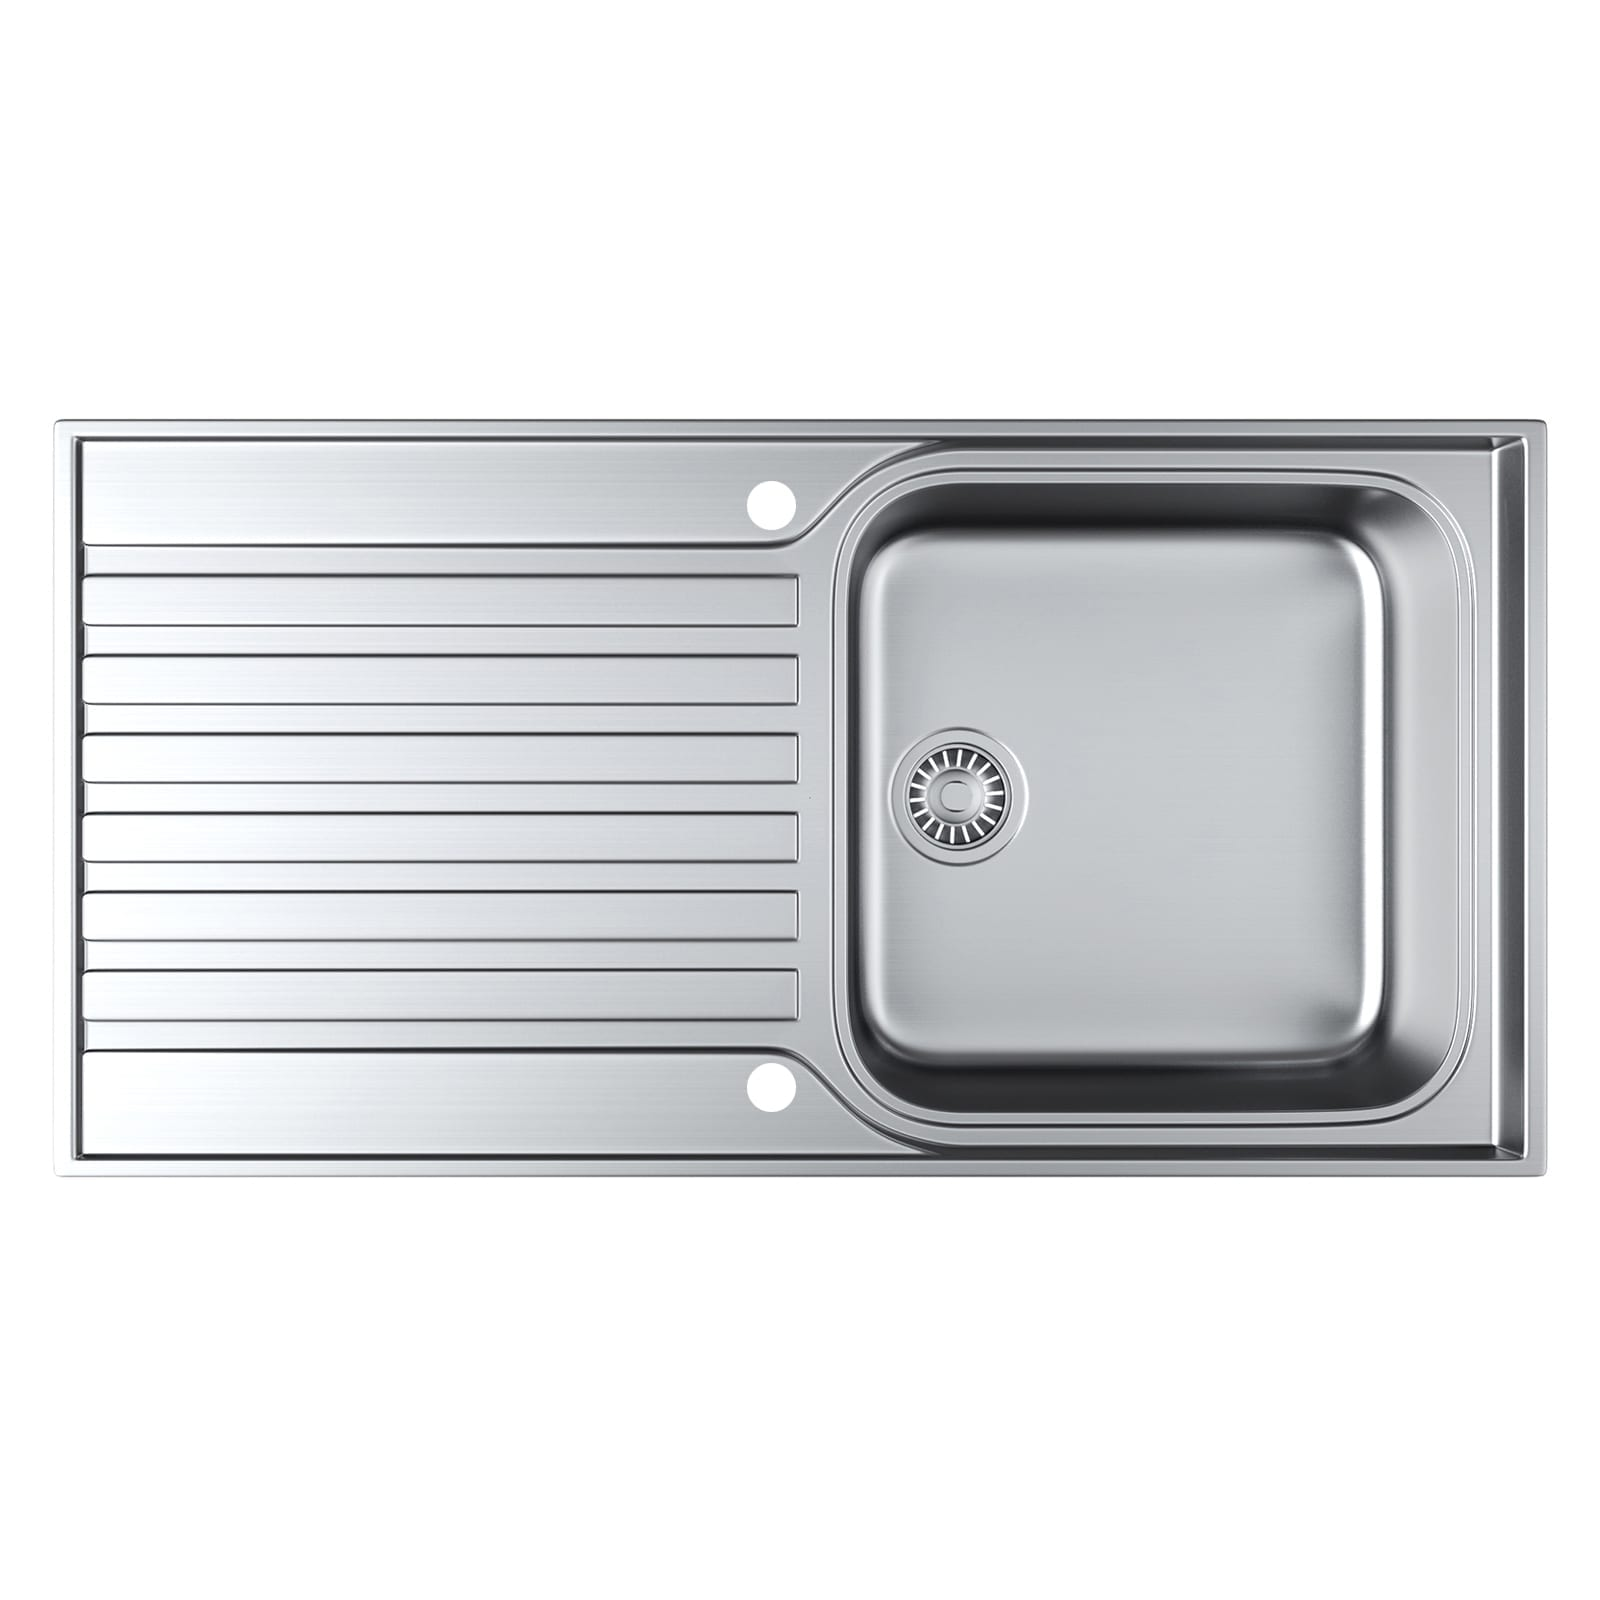 Franke ascona asx 611 100 1 0 bowl fully reversible stainless steel kitchen sink at ship it appliances